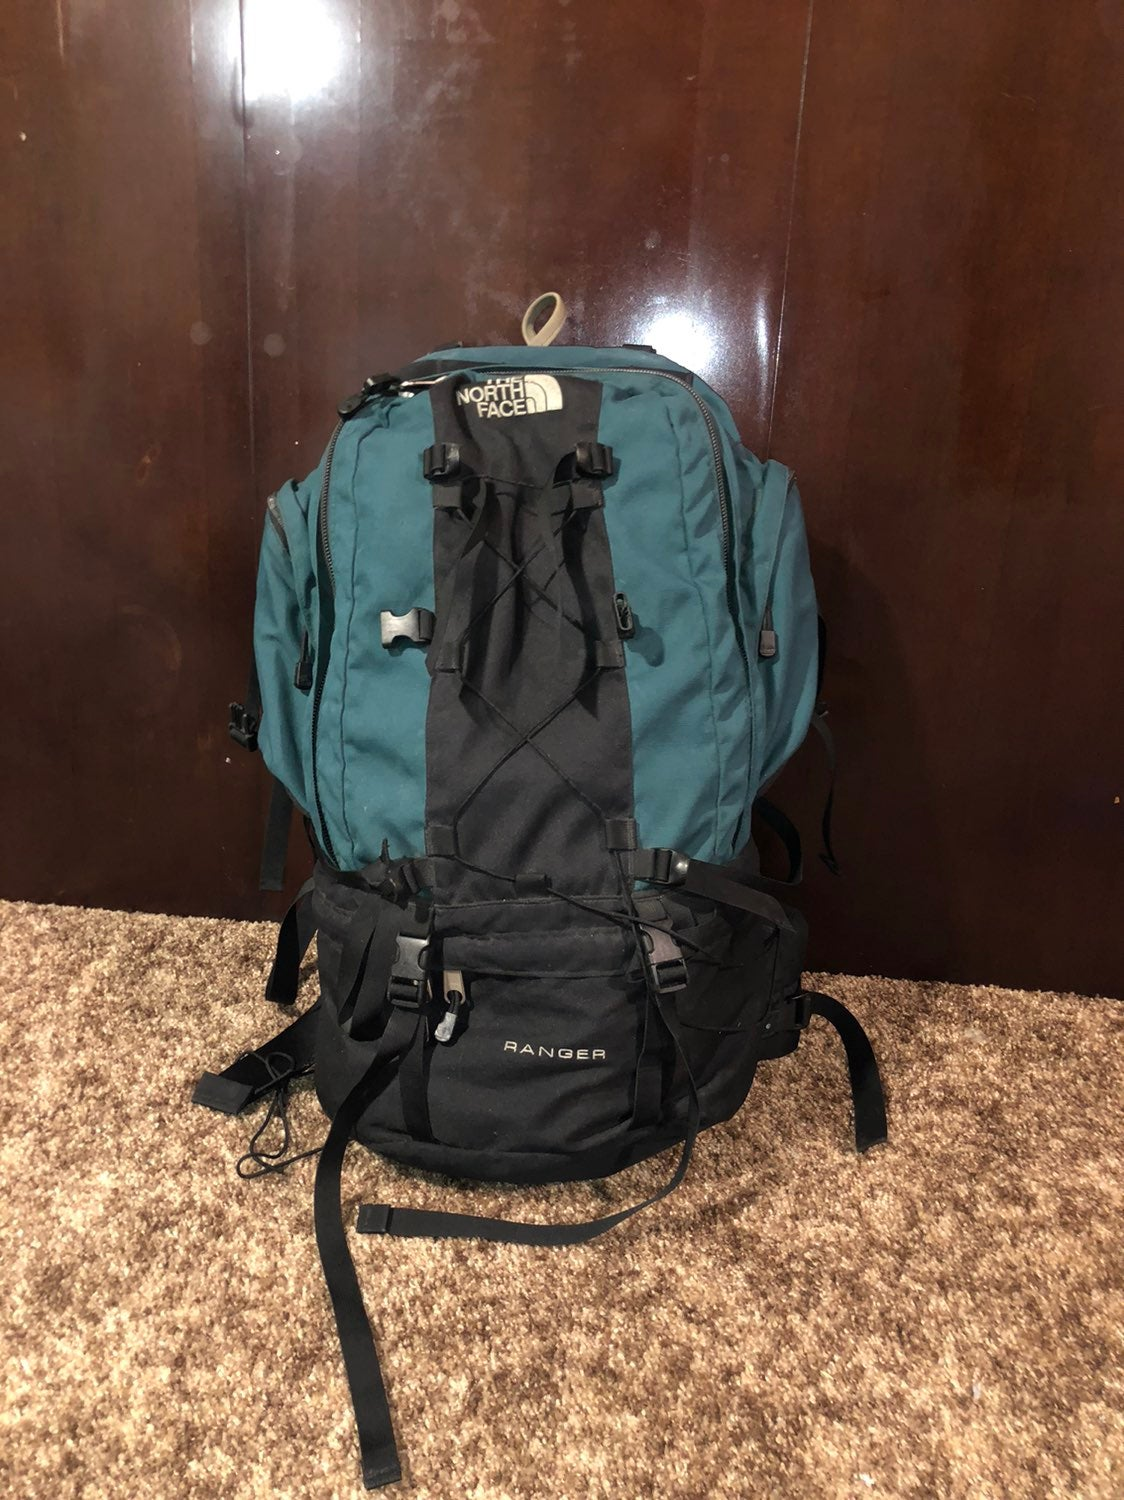 The North Face Ranger Backpack